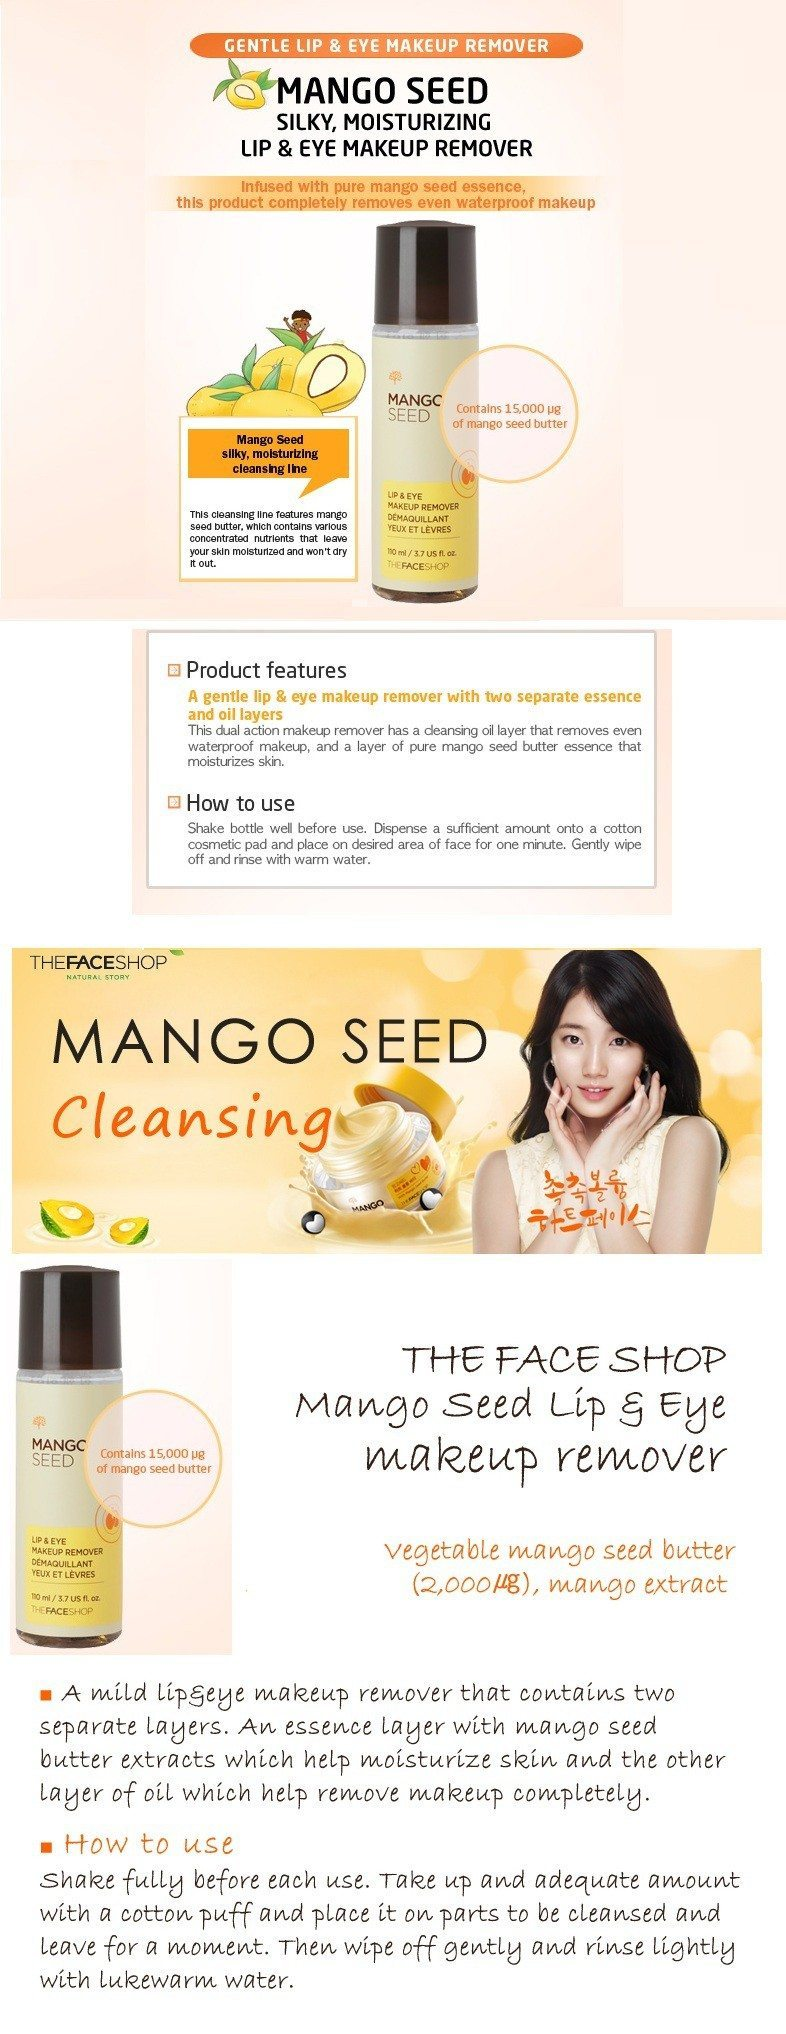 The Face Shop Mango Seed Lip and Eye Makeup Remover 110ml